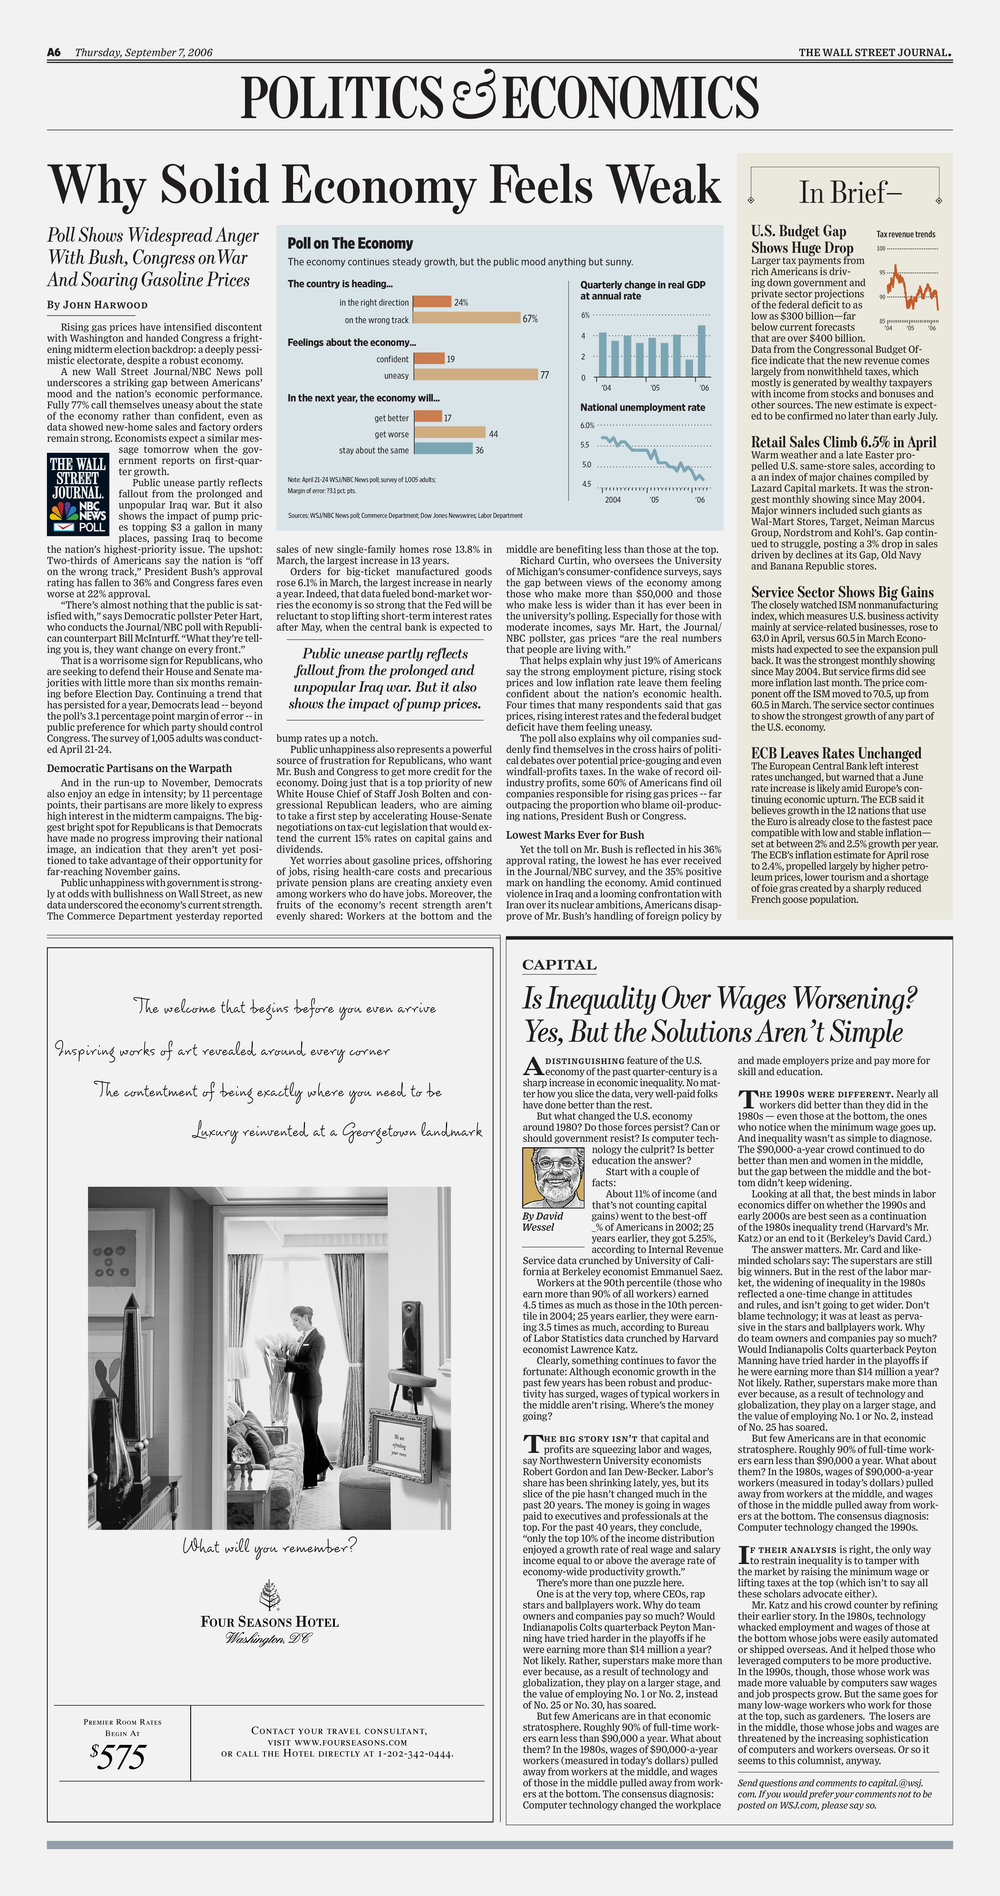 The Wall Street Journal redesign. Published by Dow Jones.